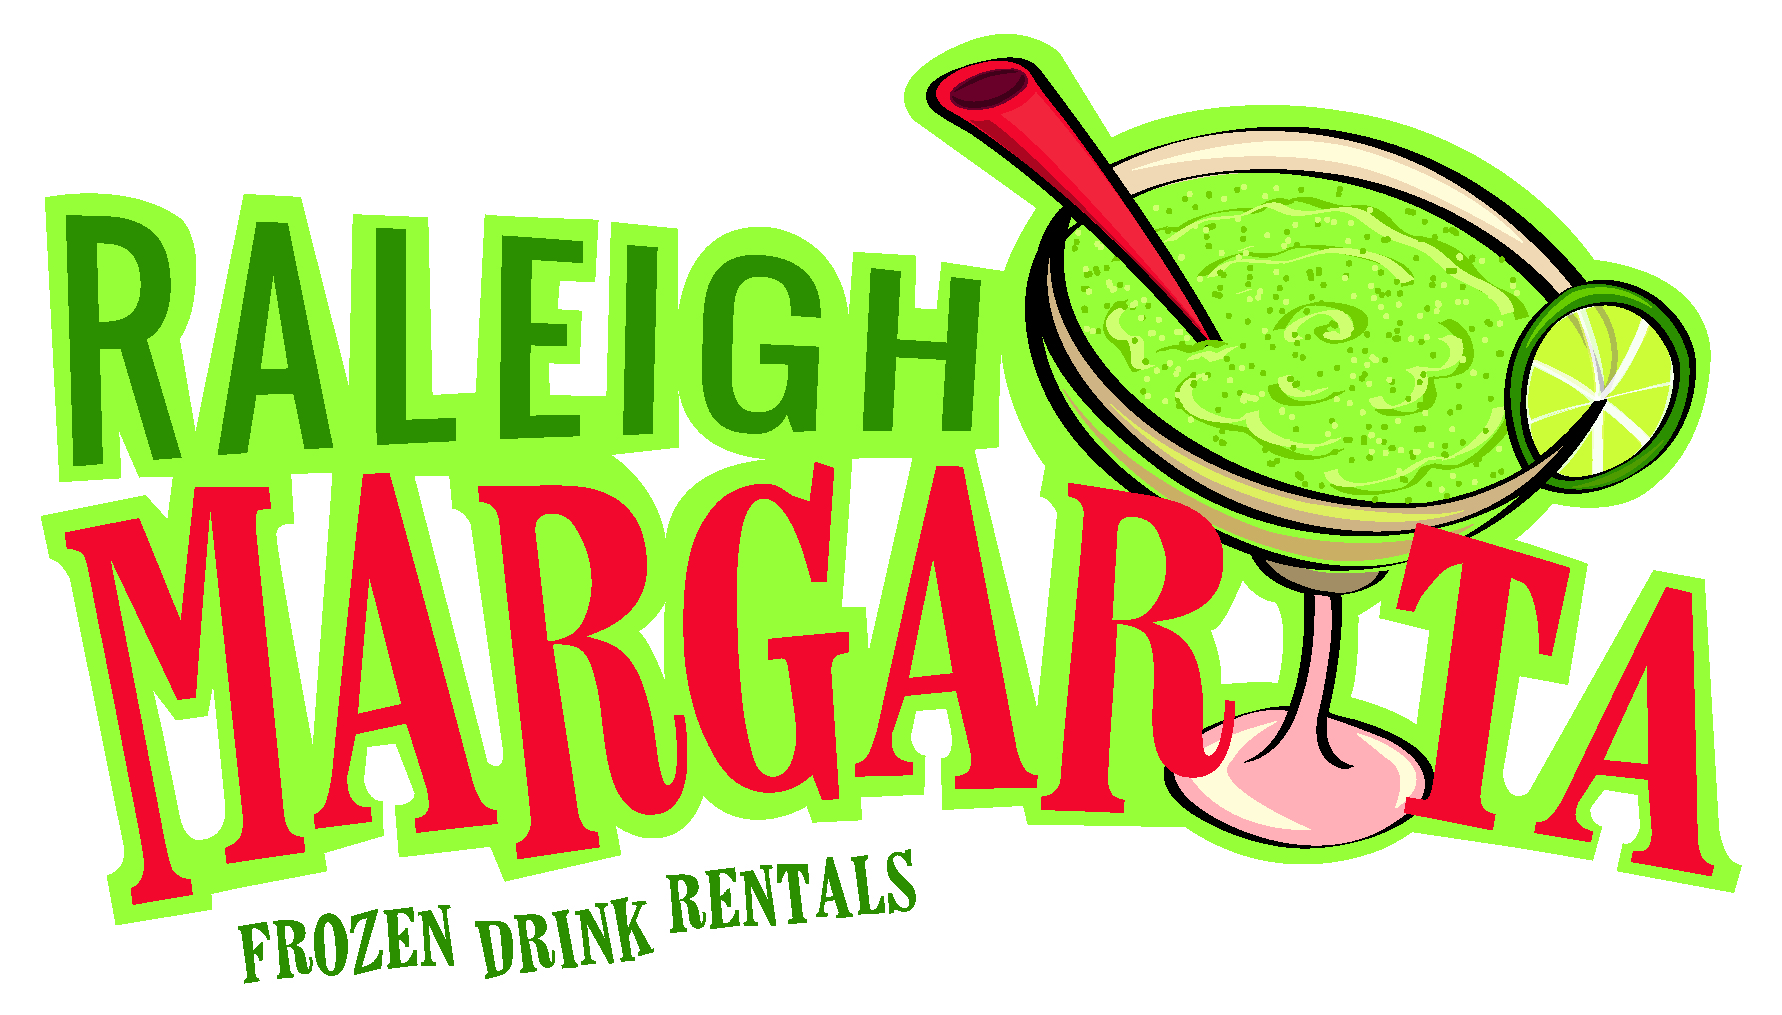 Raleigh Margarita Heating Things Up With Frozen Drink